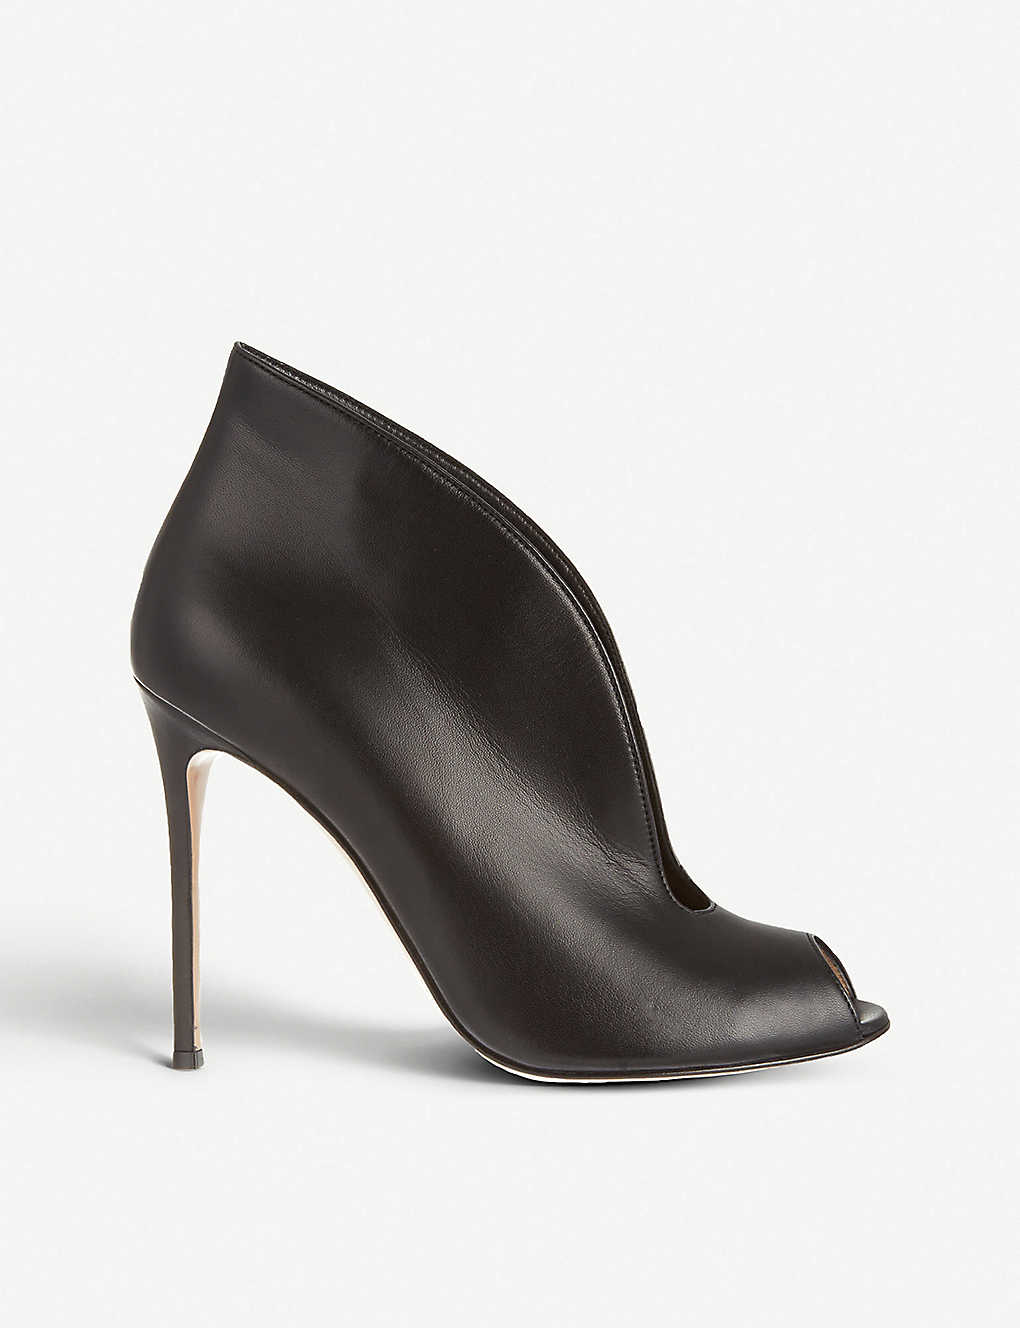 298755e83 GIANVITO ROSSI - Vamp 105 leather heeled ankle boots | Selfridges.com